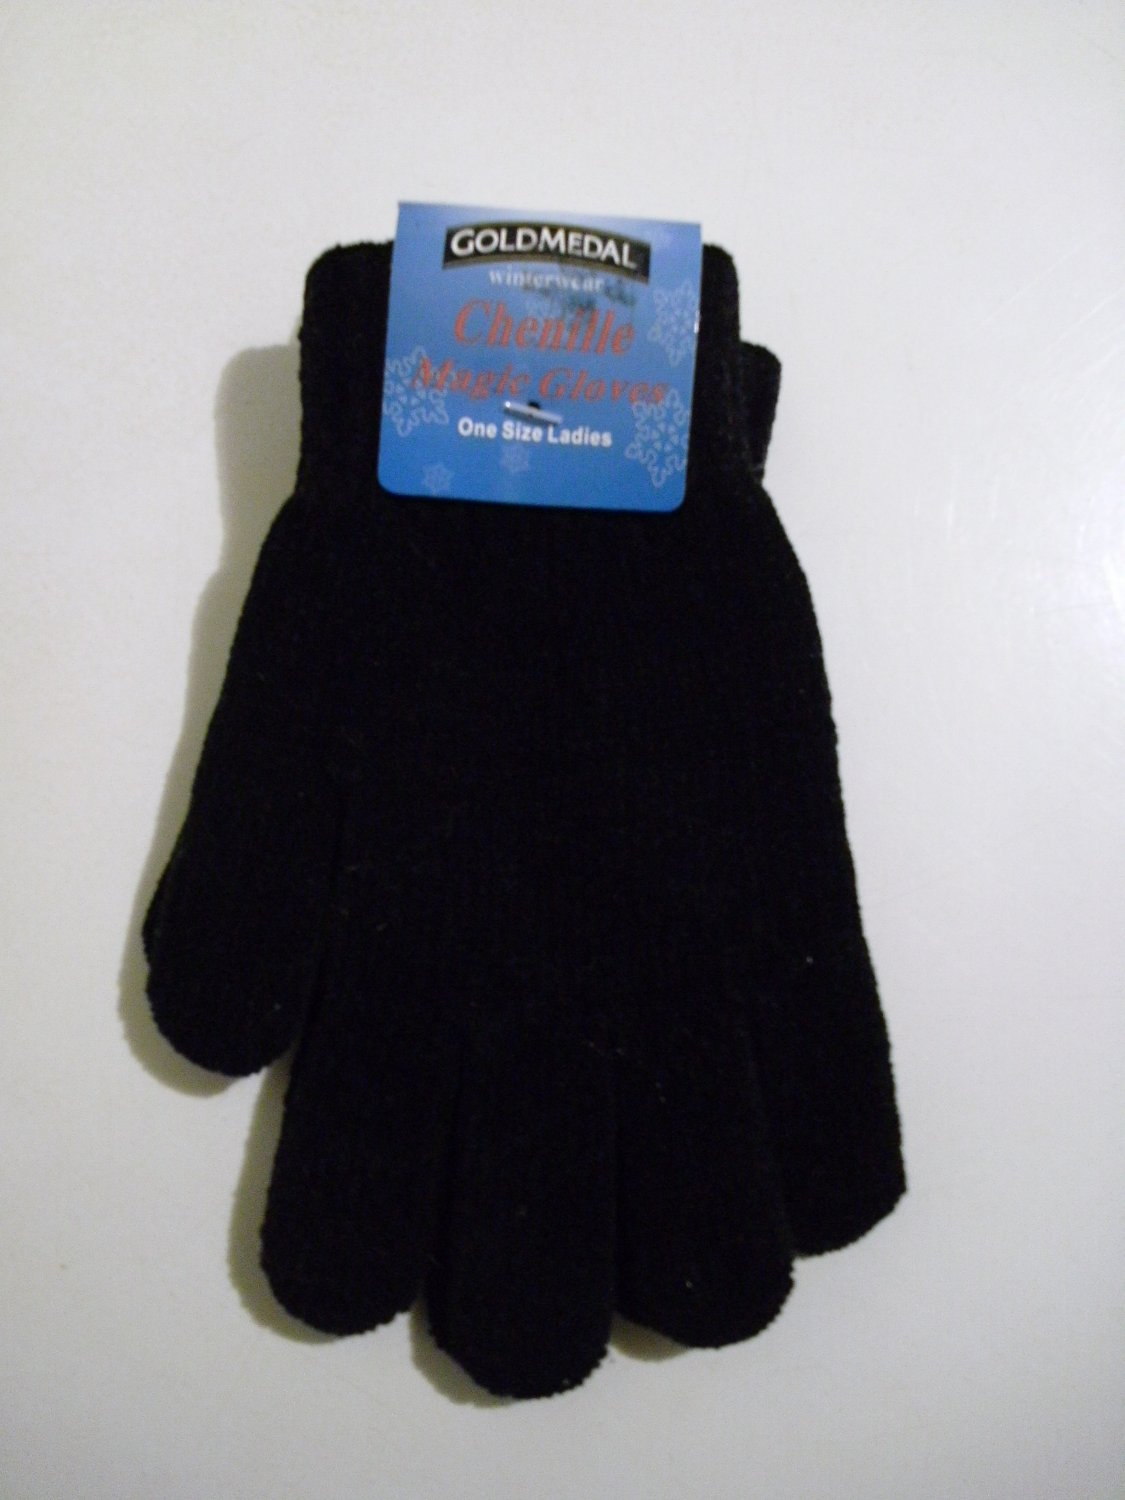 Gold Medal Chenille Magic Gloves - (Black) - One Size Ladies